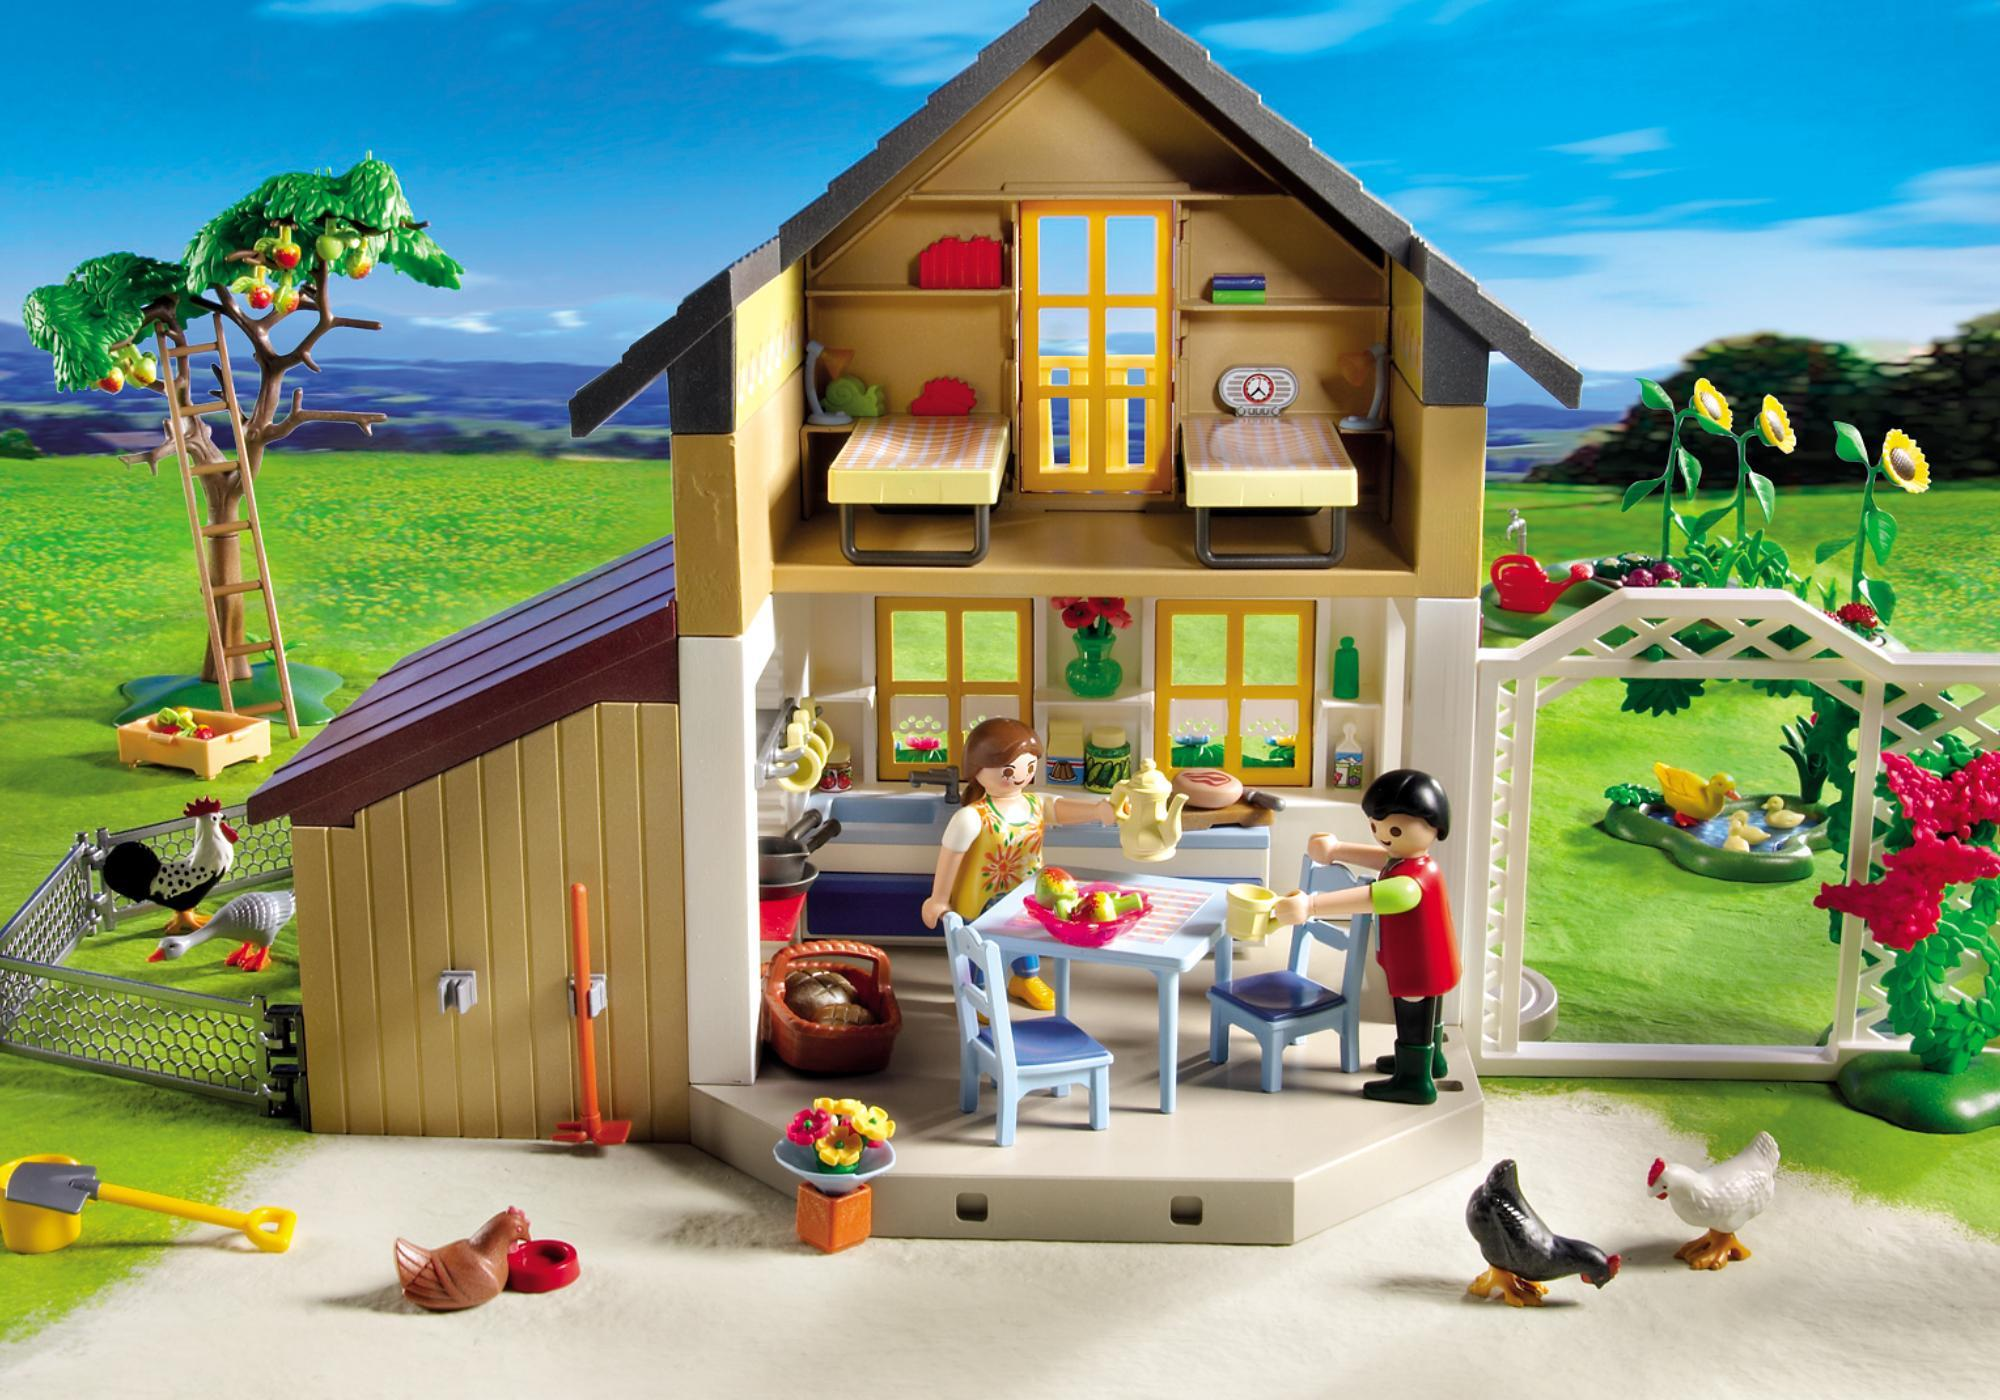 33  Erstaunlich playmobil for Farmhouse Playmobil  584dqh